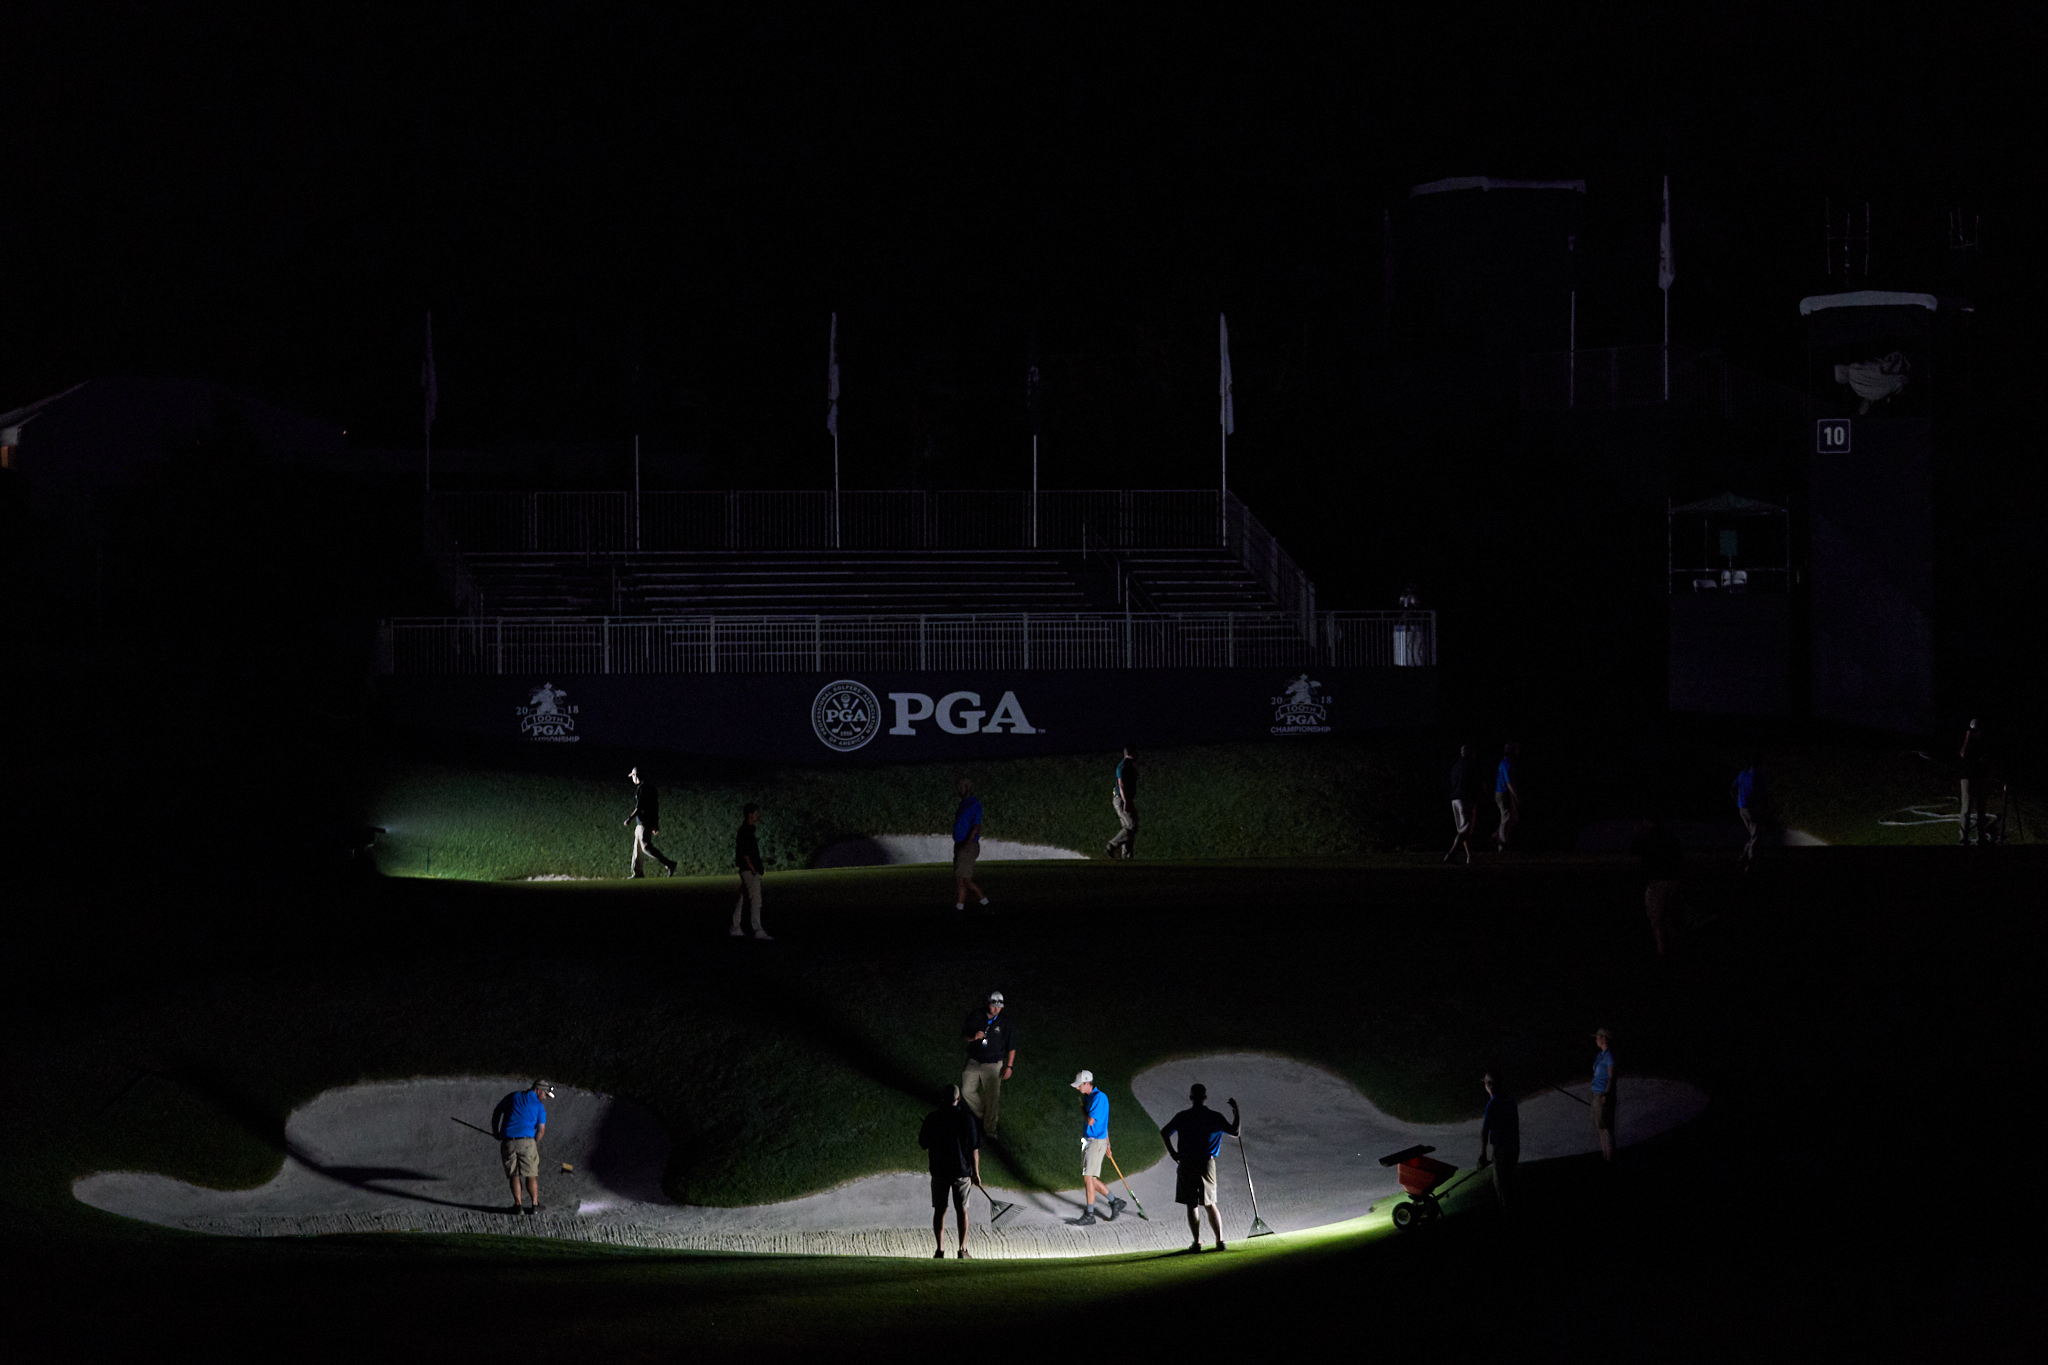 Members of the maintenance staff prepare the 10th early in the morning before round two.  (Sony A9, Sony 24-70mm f2.8 G-Master)